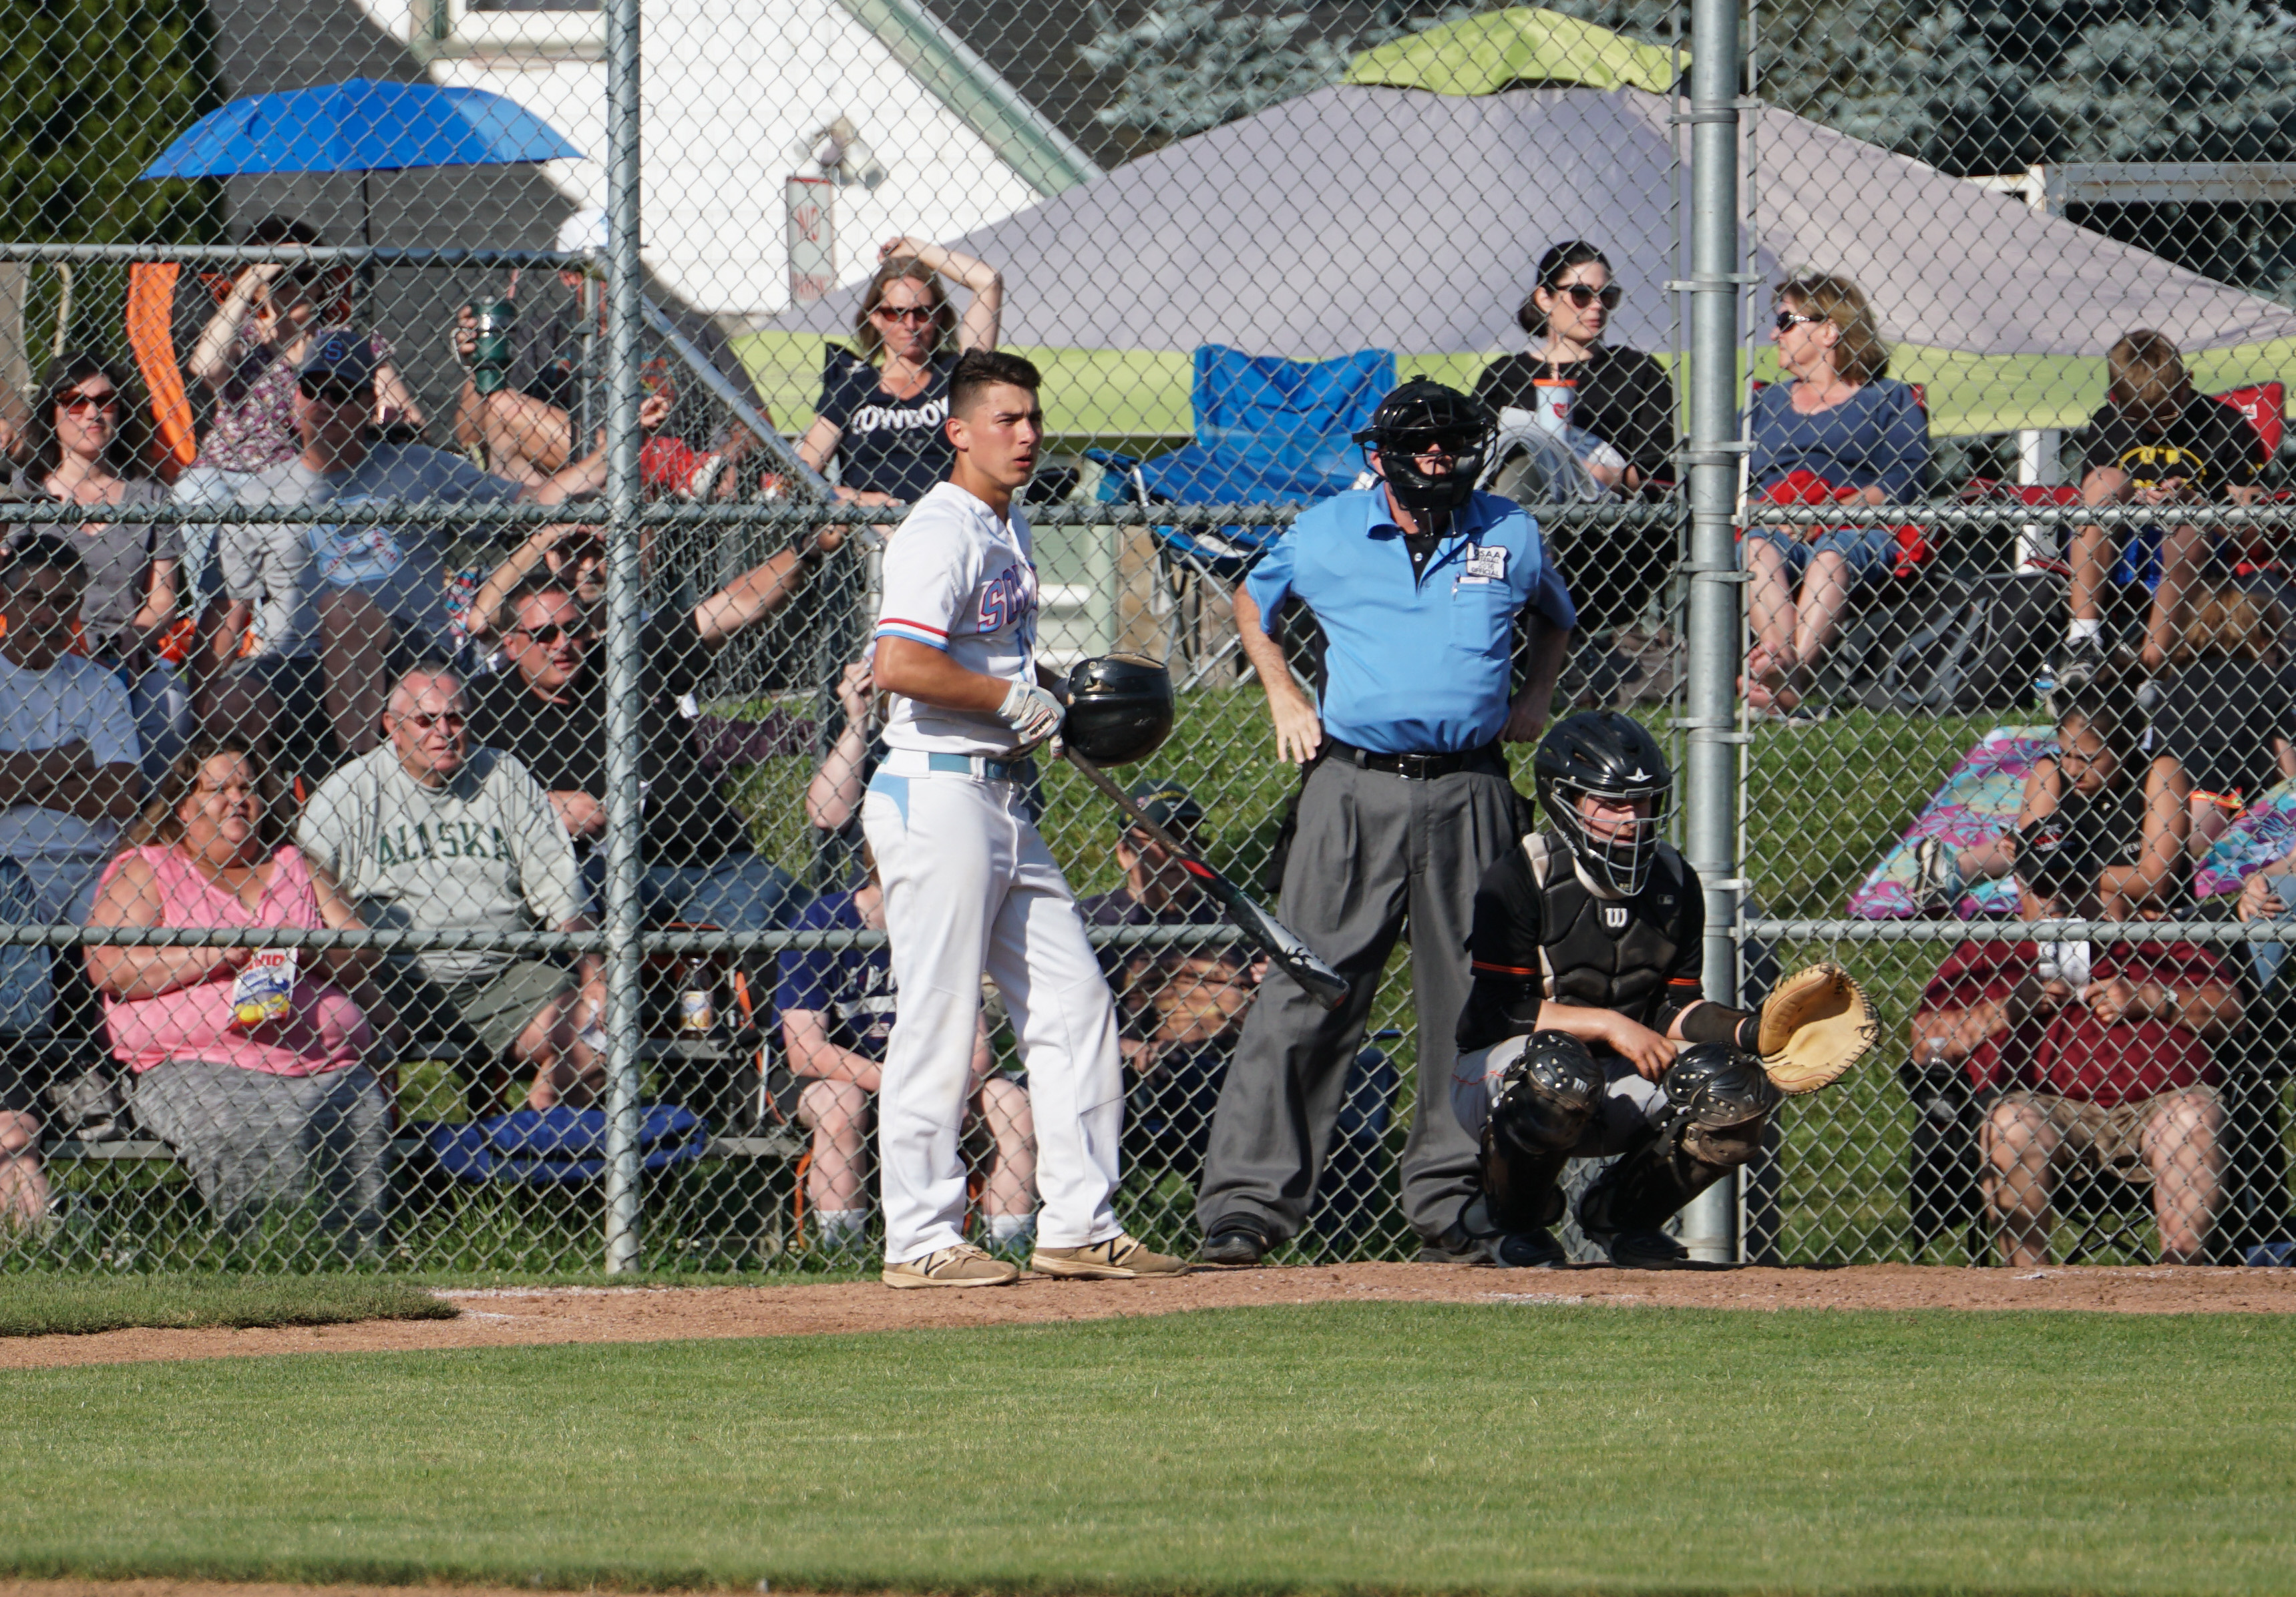 BASE: Aaron Zavala named Oregon 6A State Player of the Year